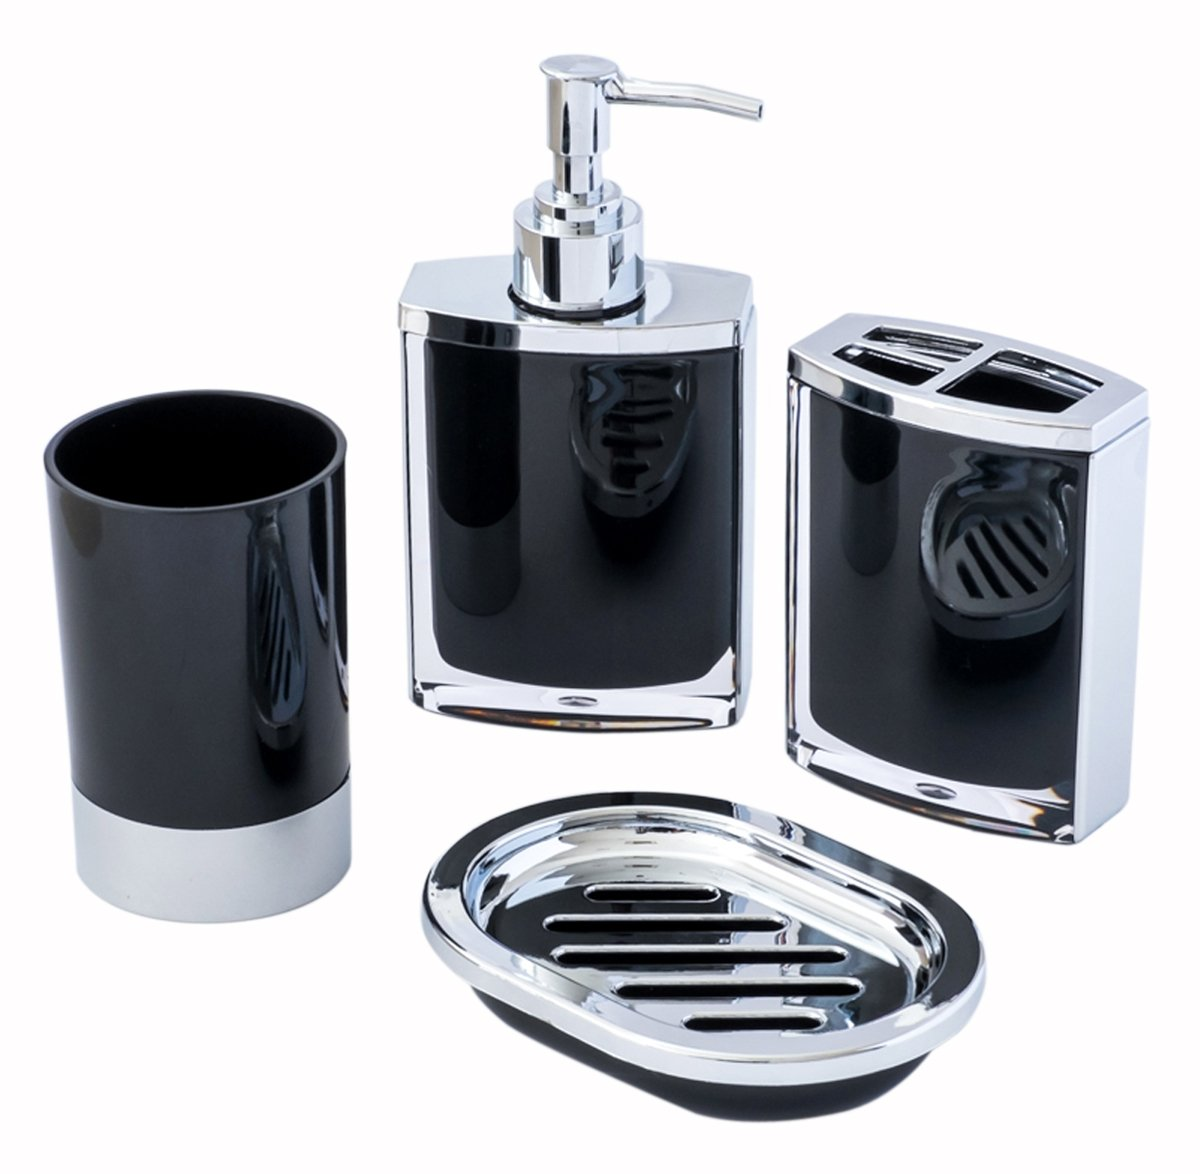 4-Piece Vogue Black and Chrome Jewelry Bathroom & Shower Accessory Set; with Lotion/Soap Dispenser, Bath Cup/Tumbler, Soap Dish, Toothbrush Holder Match for Marble or Glass Modern Bath Style